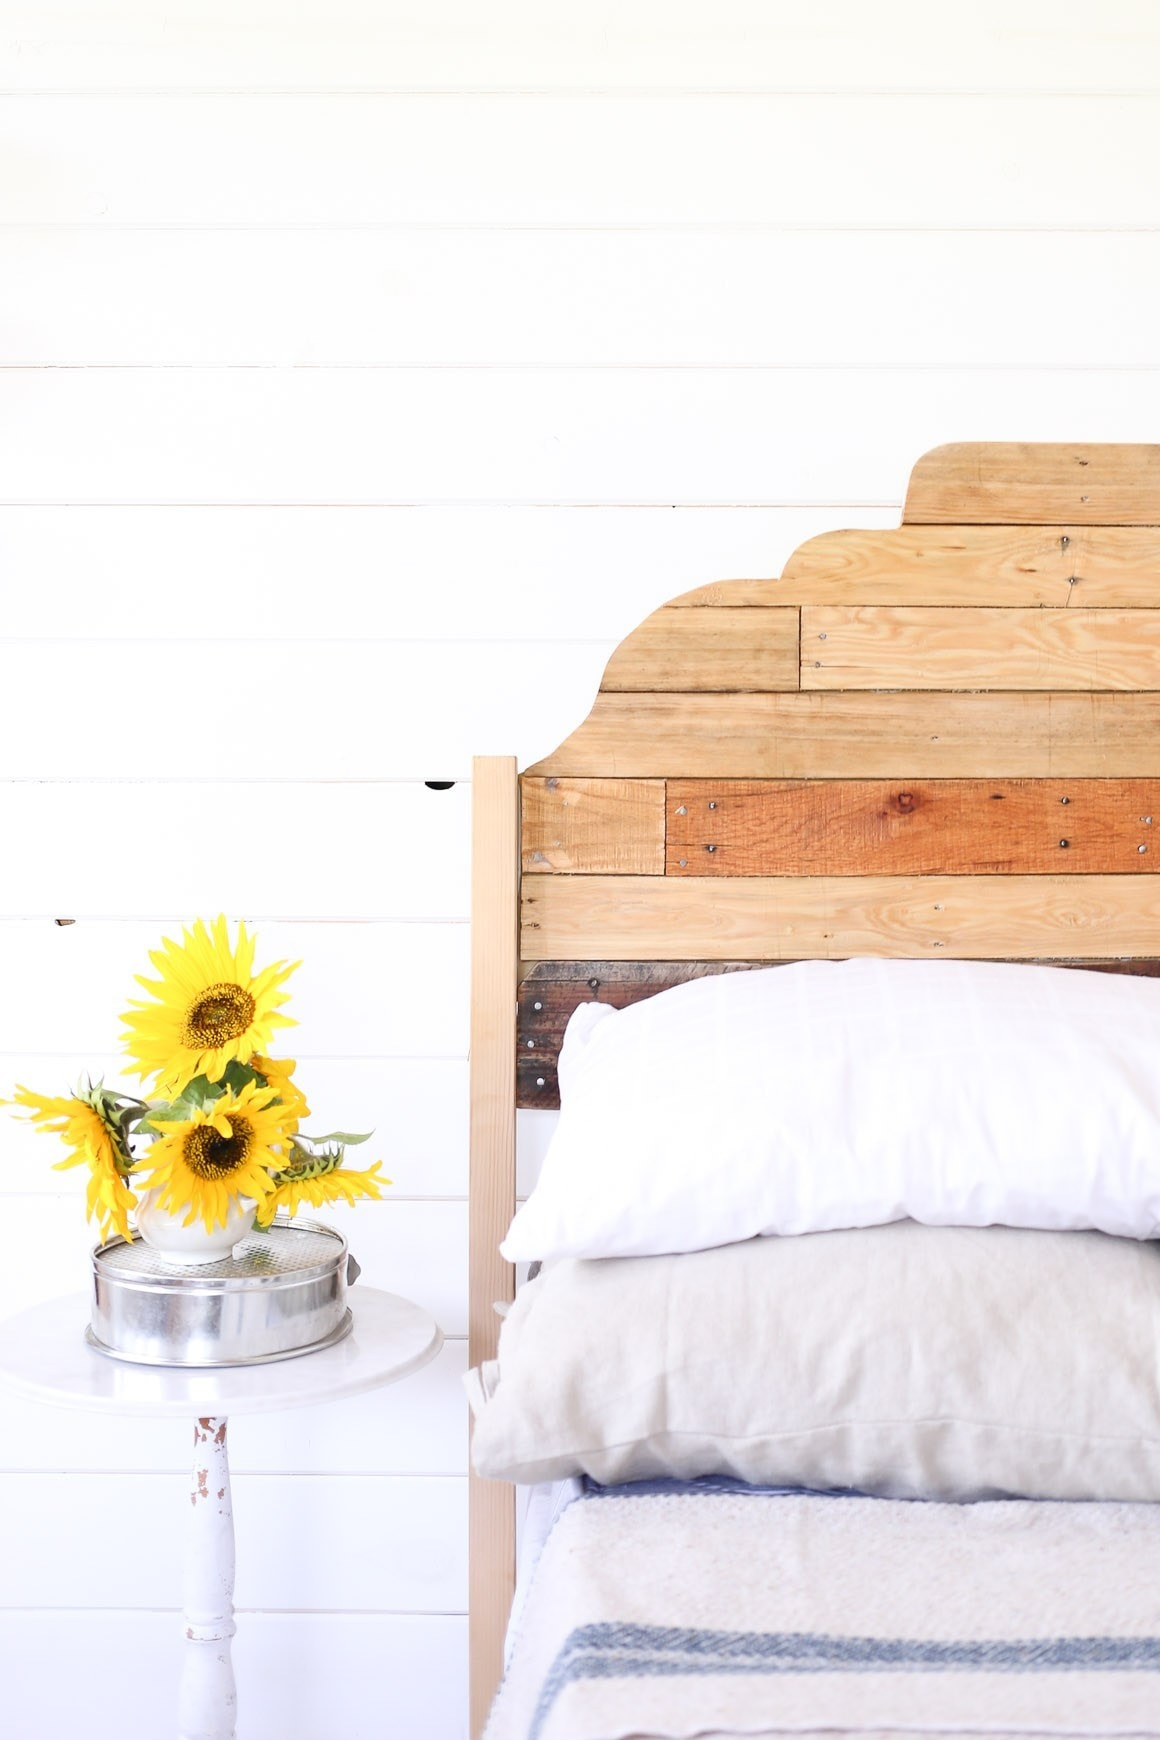 wooden bed with flowers